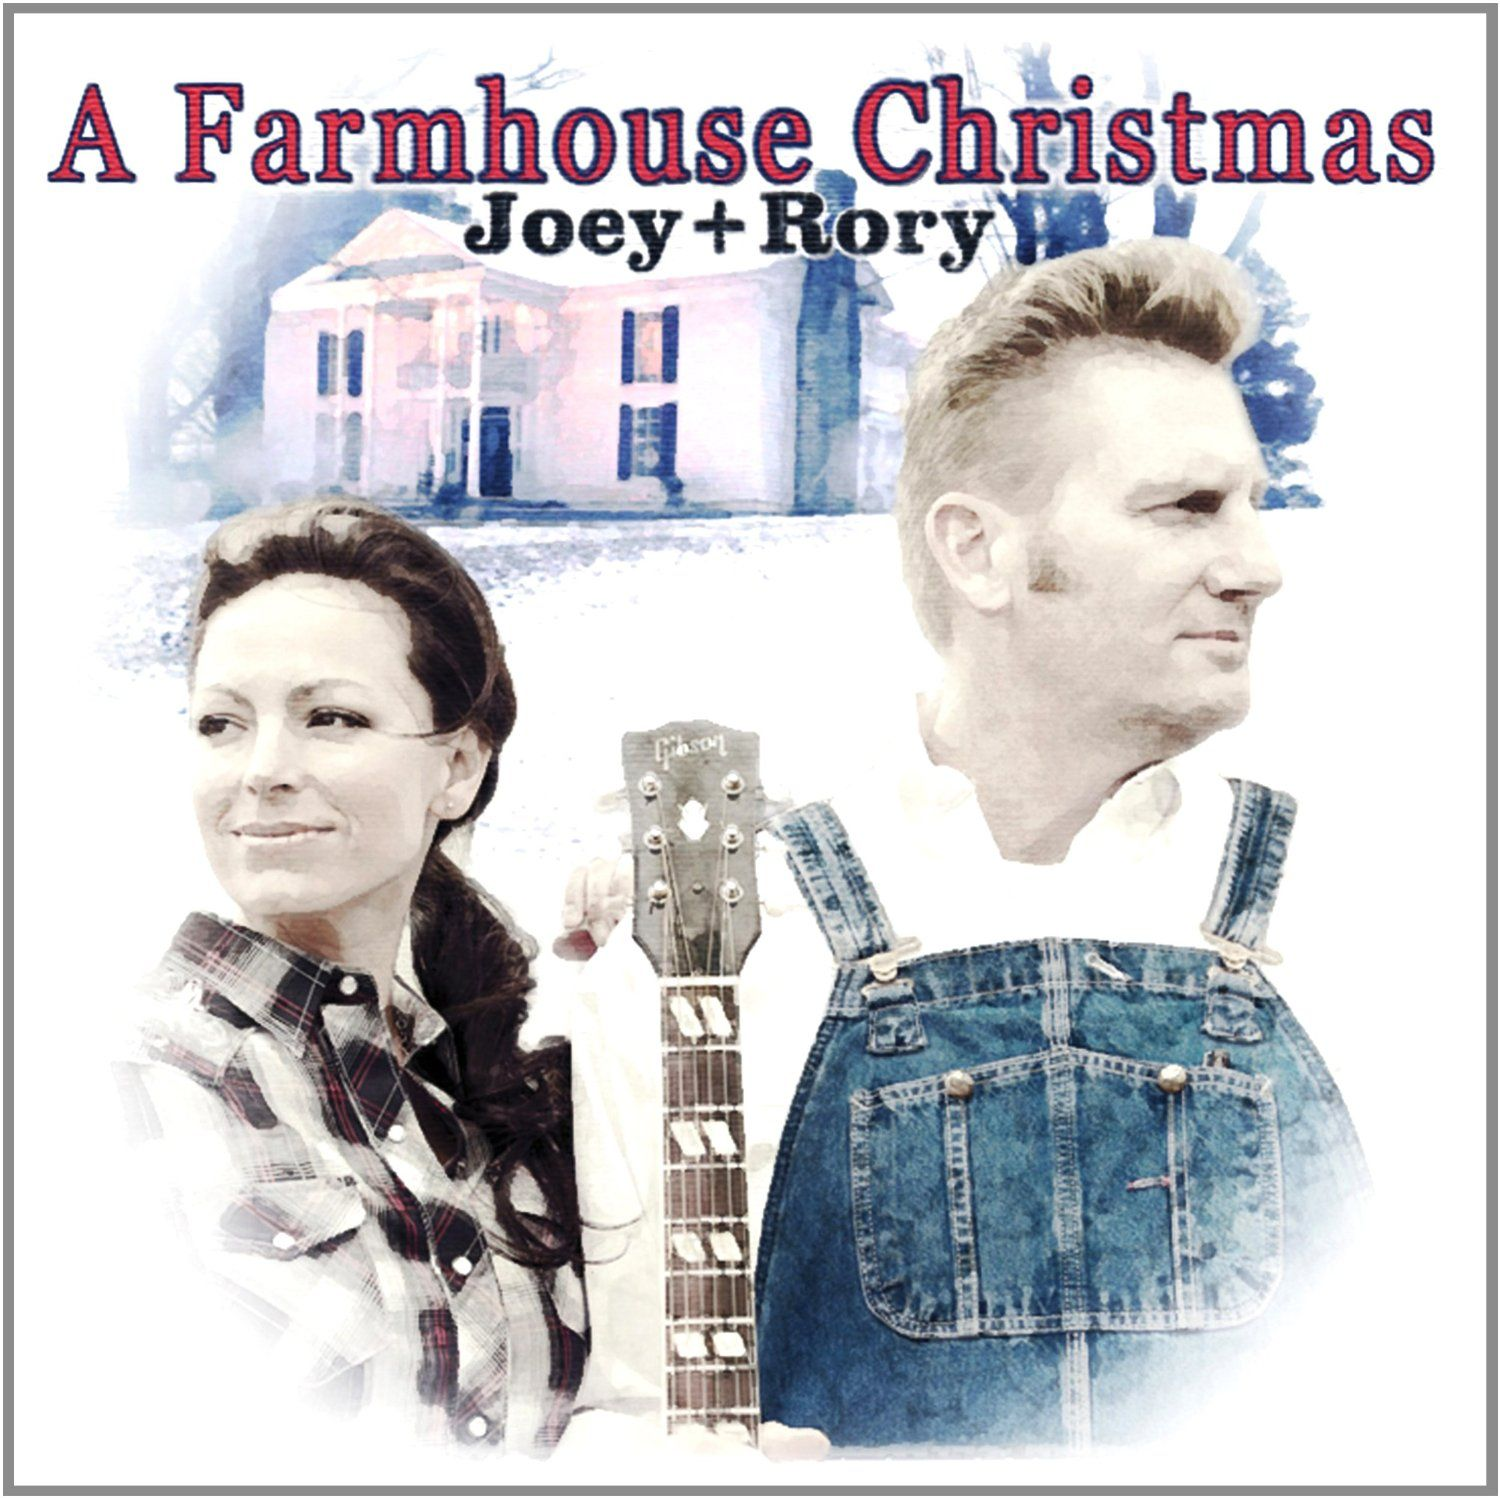 Joey & Rory - Farmhouse Christmas | Christmas CD's | Pinterest